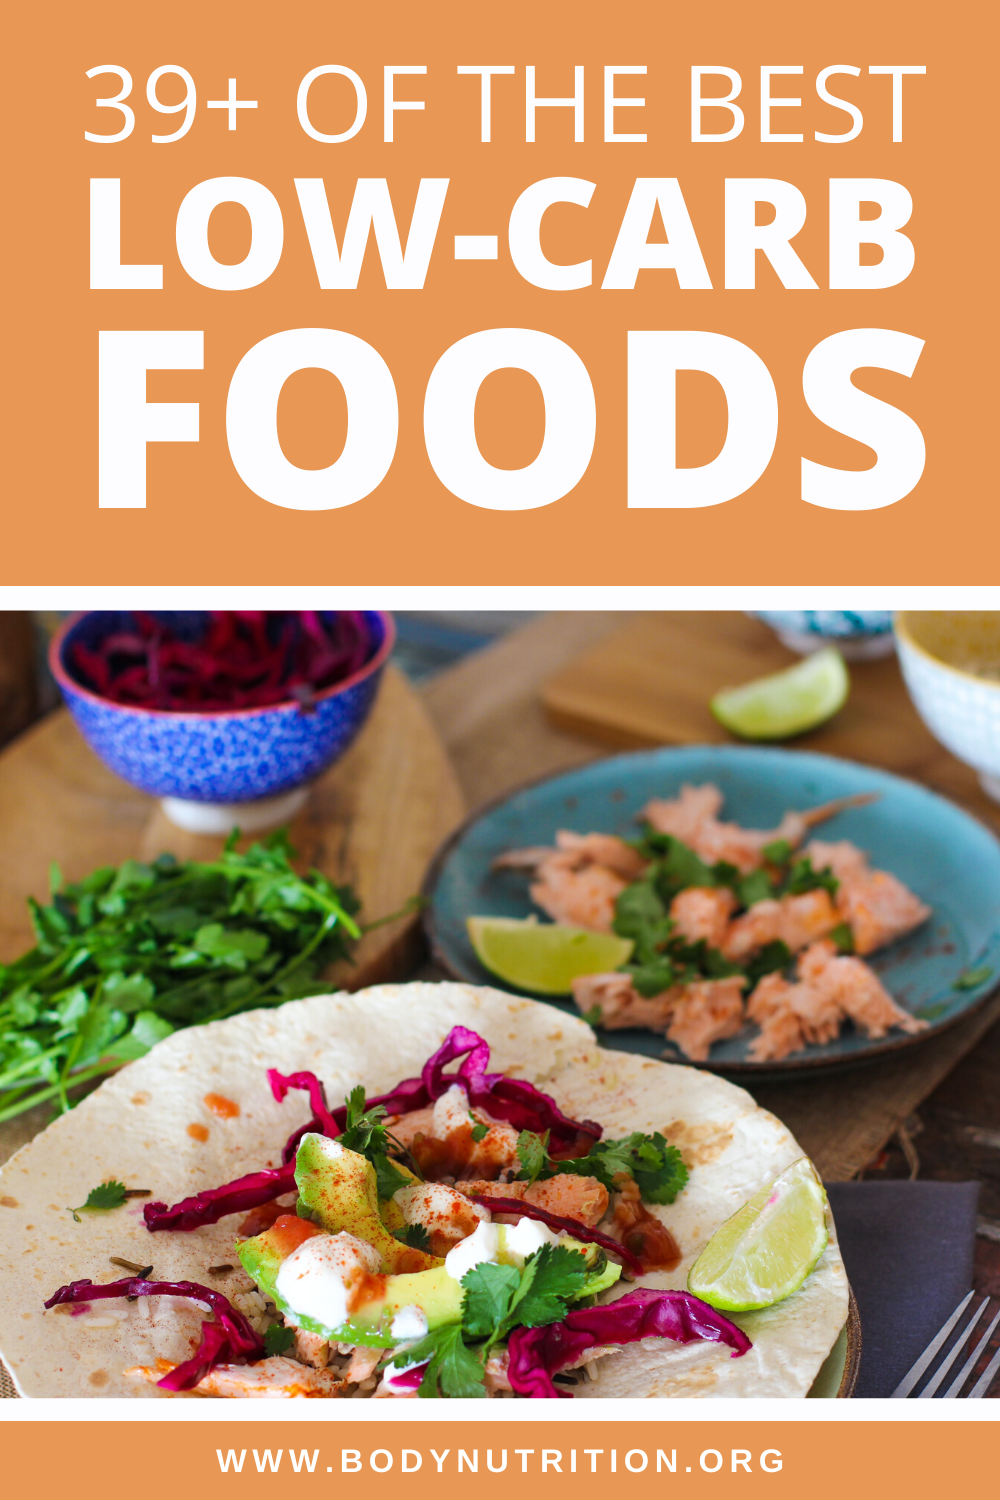 39 of the Best Low-Carb Foods You Should Be Eating in 2020 ...